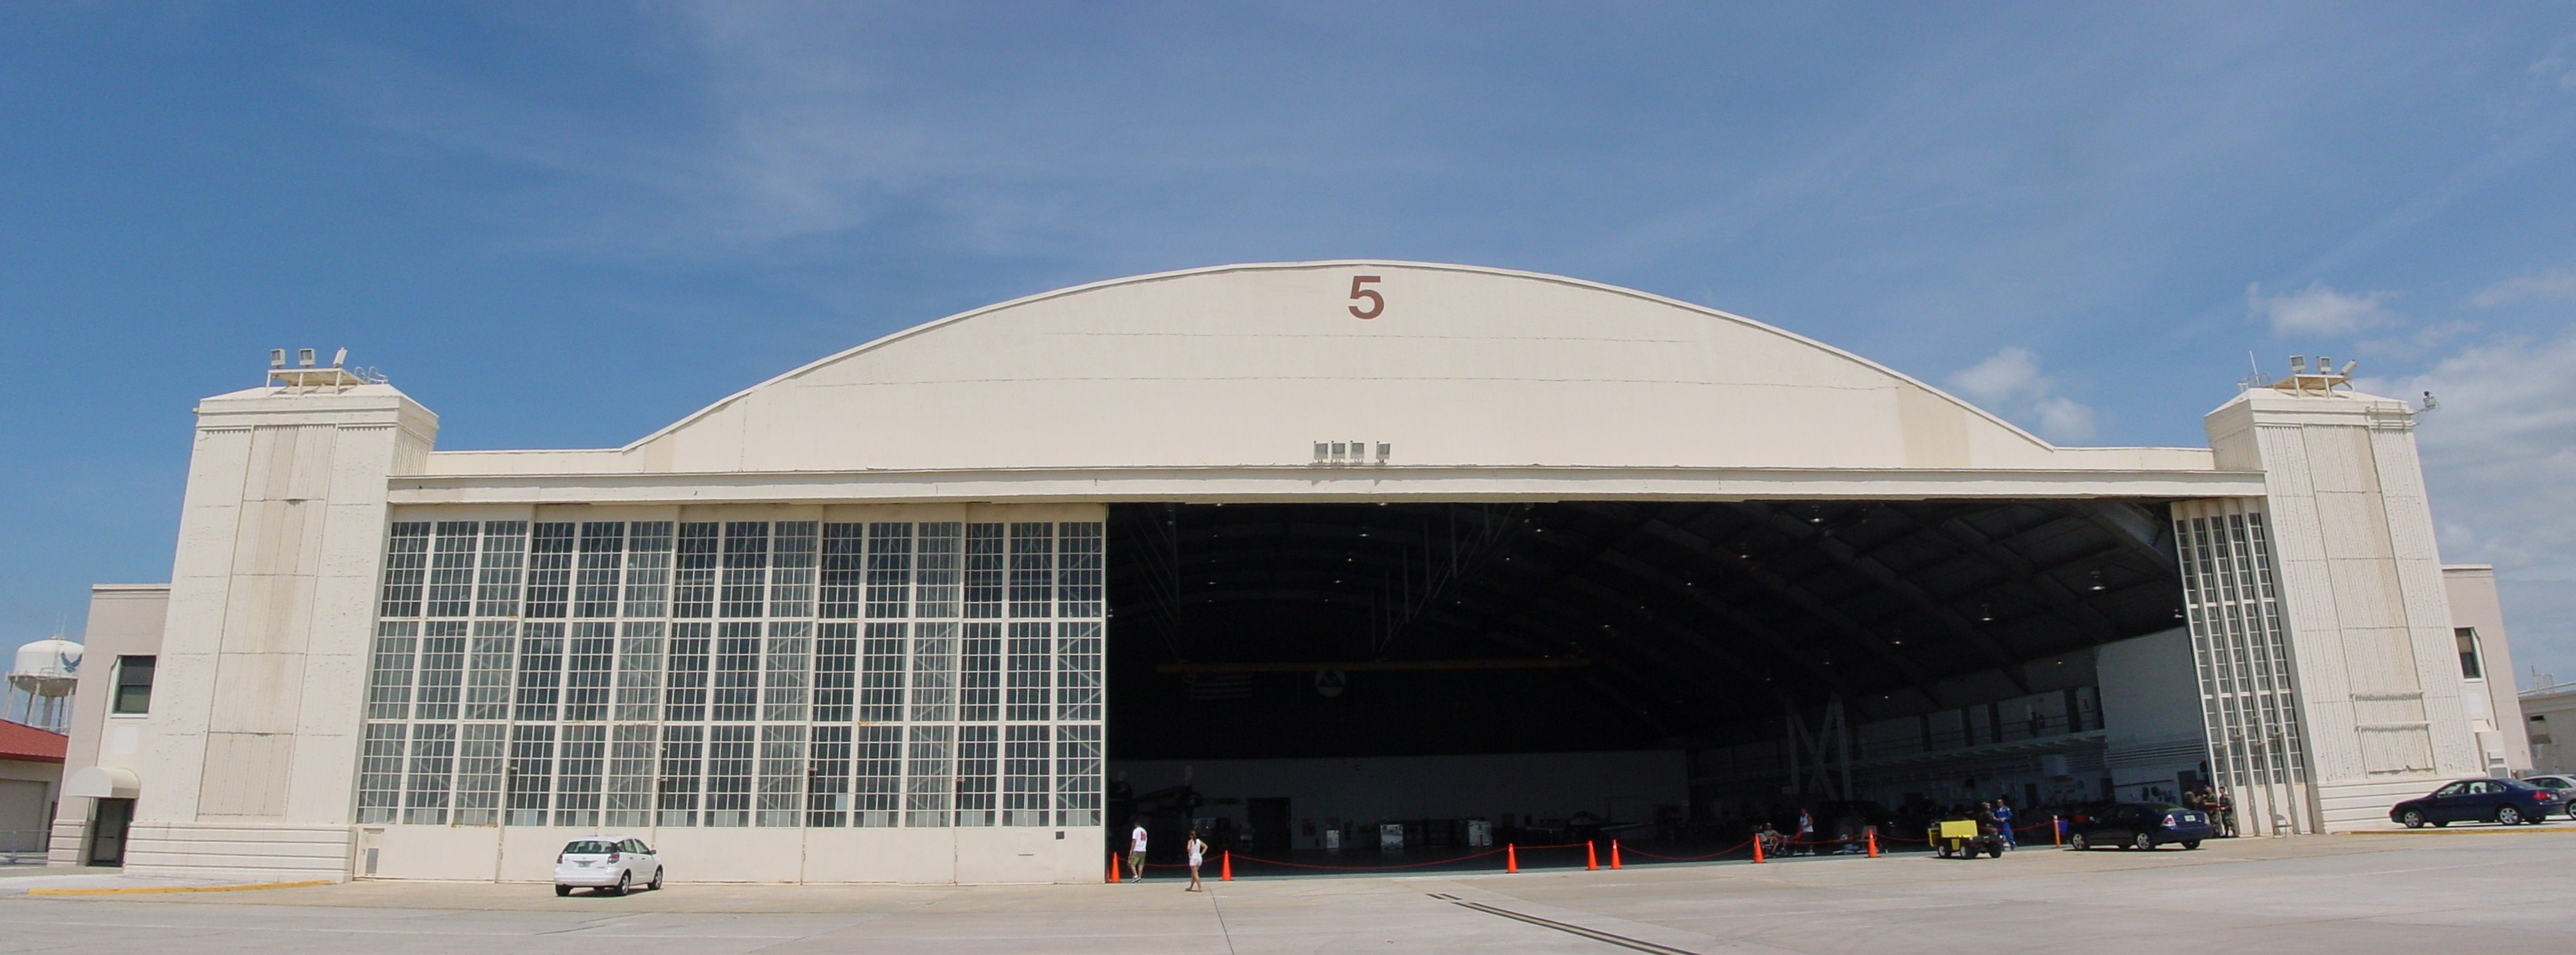 helicopter hangars with File Outside Noaa Aoc Hangar 5 Macdill Afb T A Florida on File Outside NOAA AOC Hangar 5 MacDill AFB T a Florida furthermore Grand Designs The Mighty Cessna Caravan as well Hmx 1 Maintenance Hangar besides Smartug as well Tripoli International Airport Maintenance Hangar.